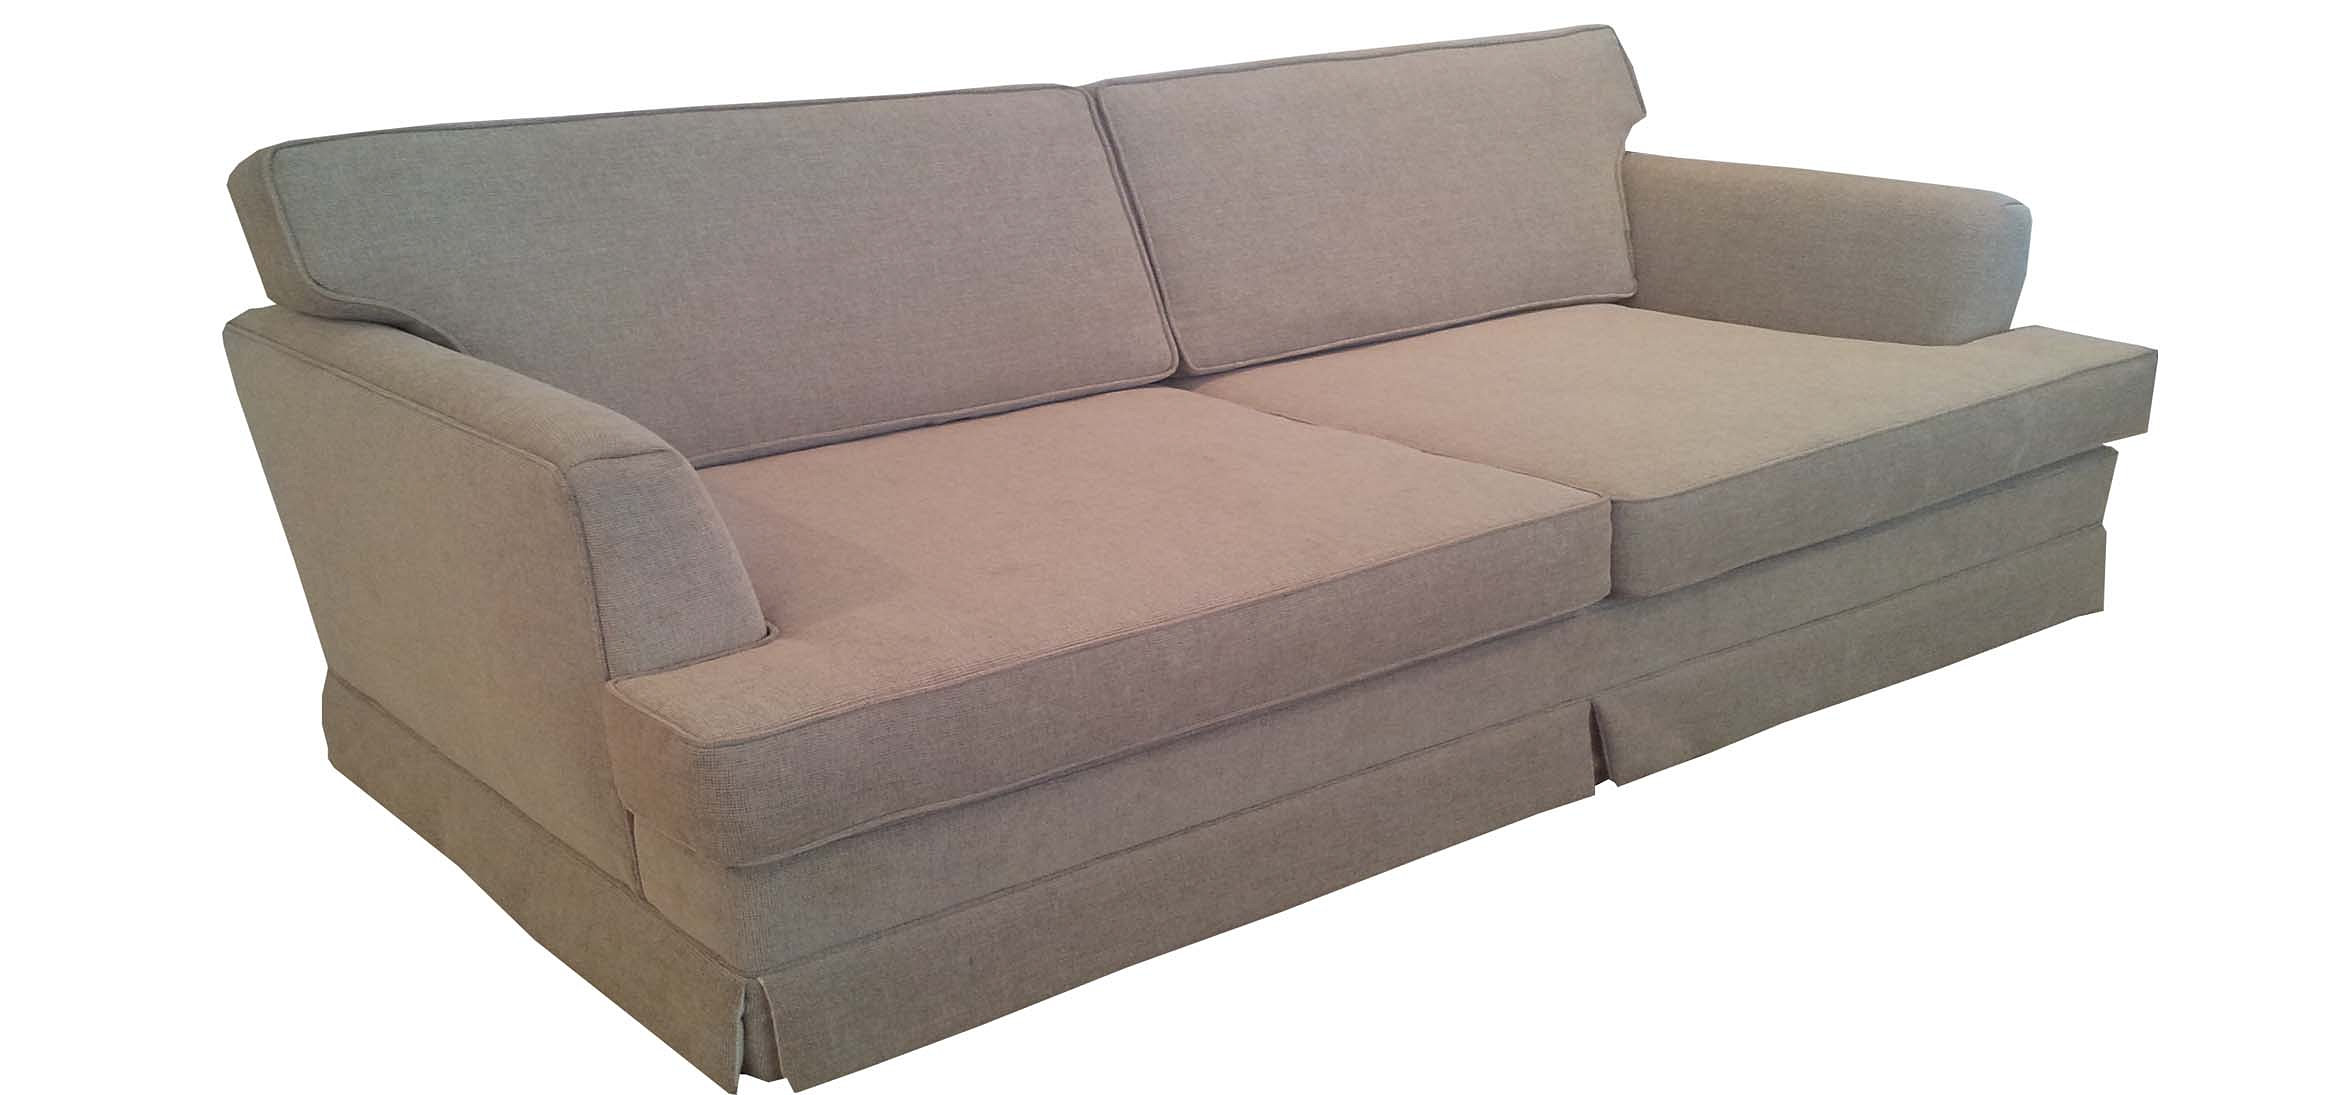 Fabric Sofas Brisbane